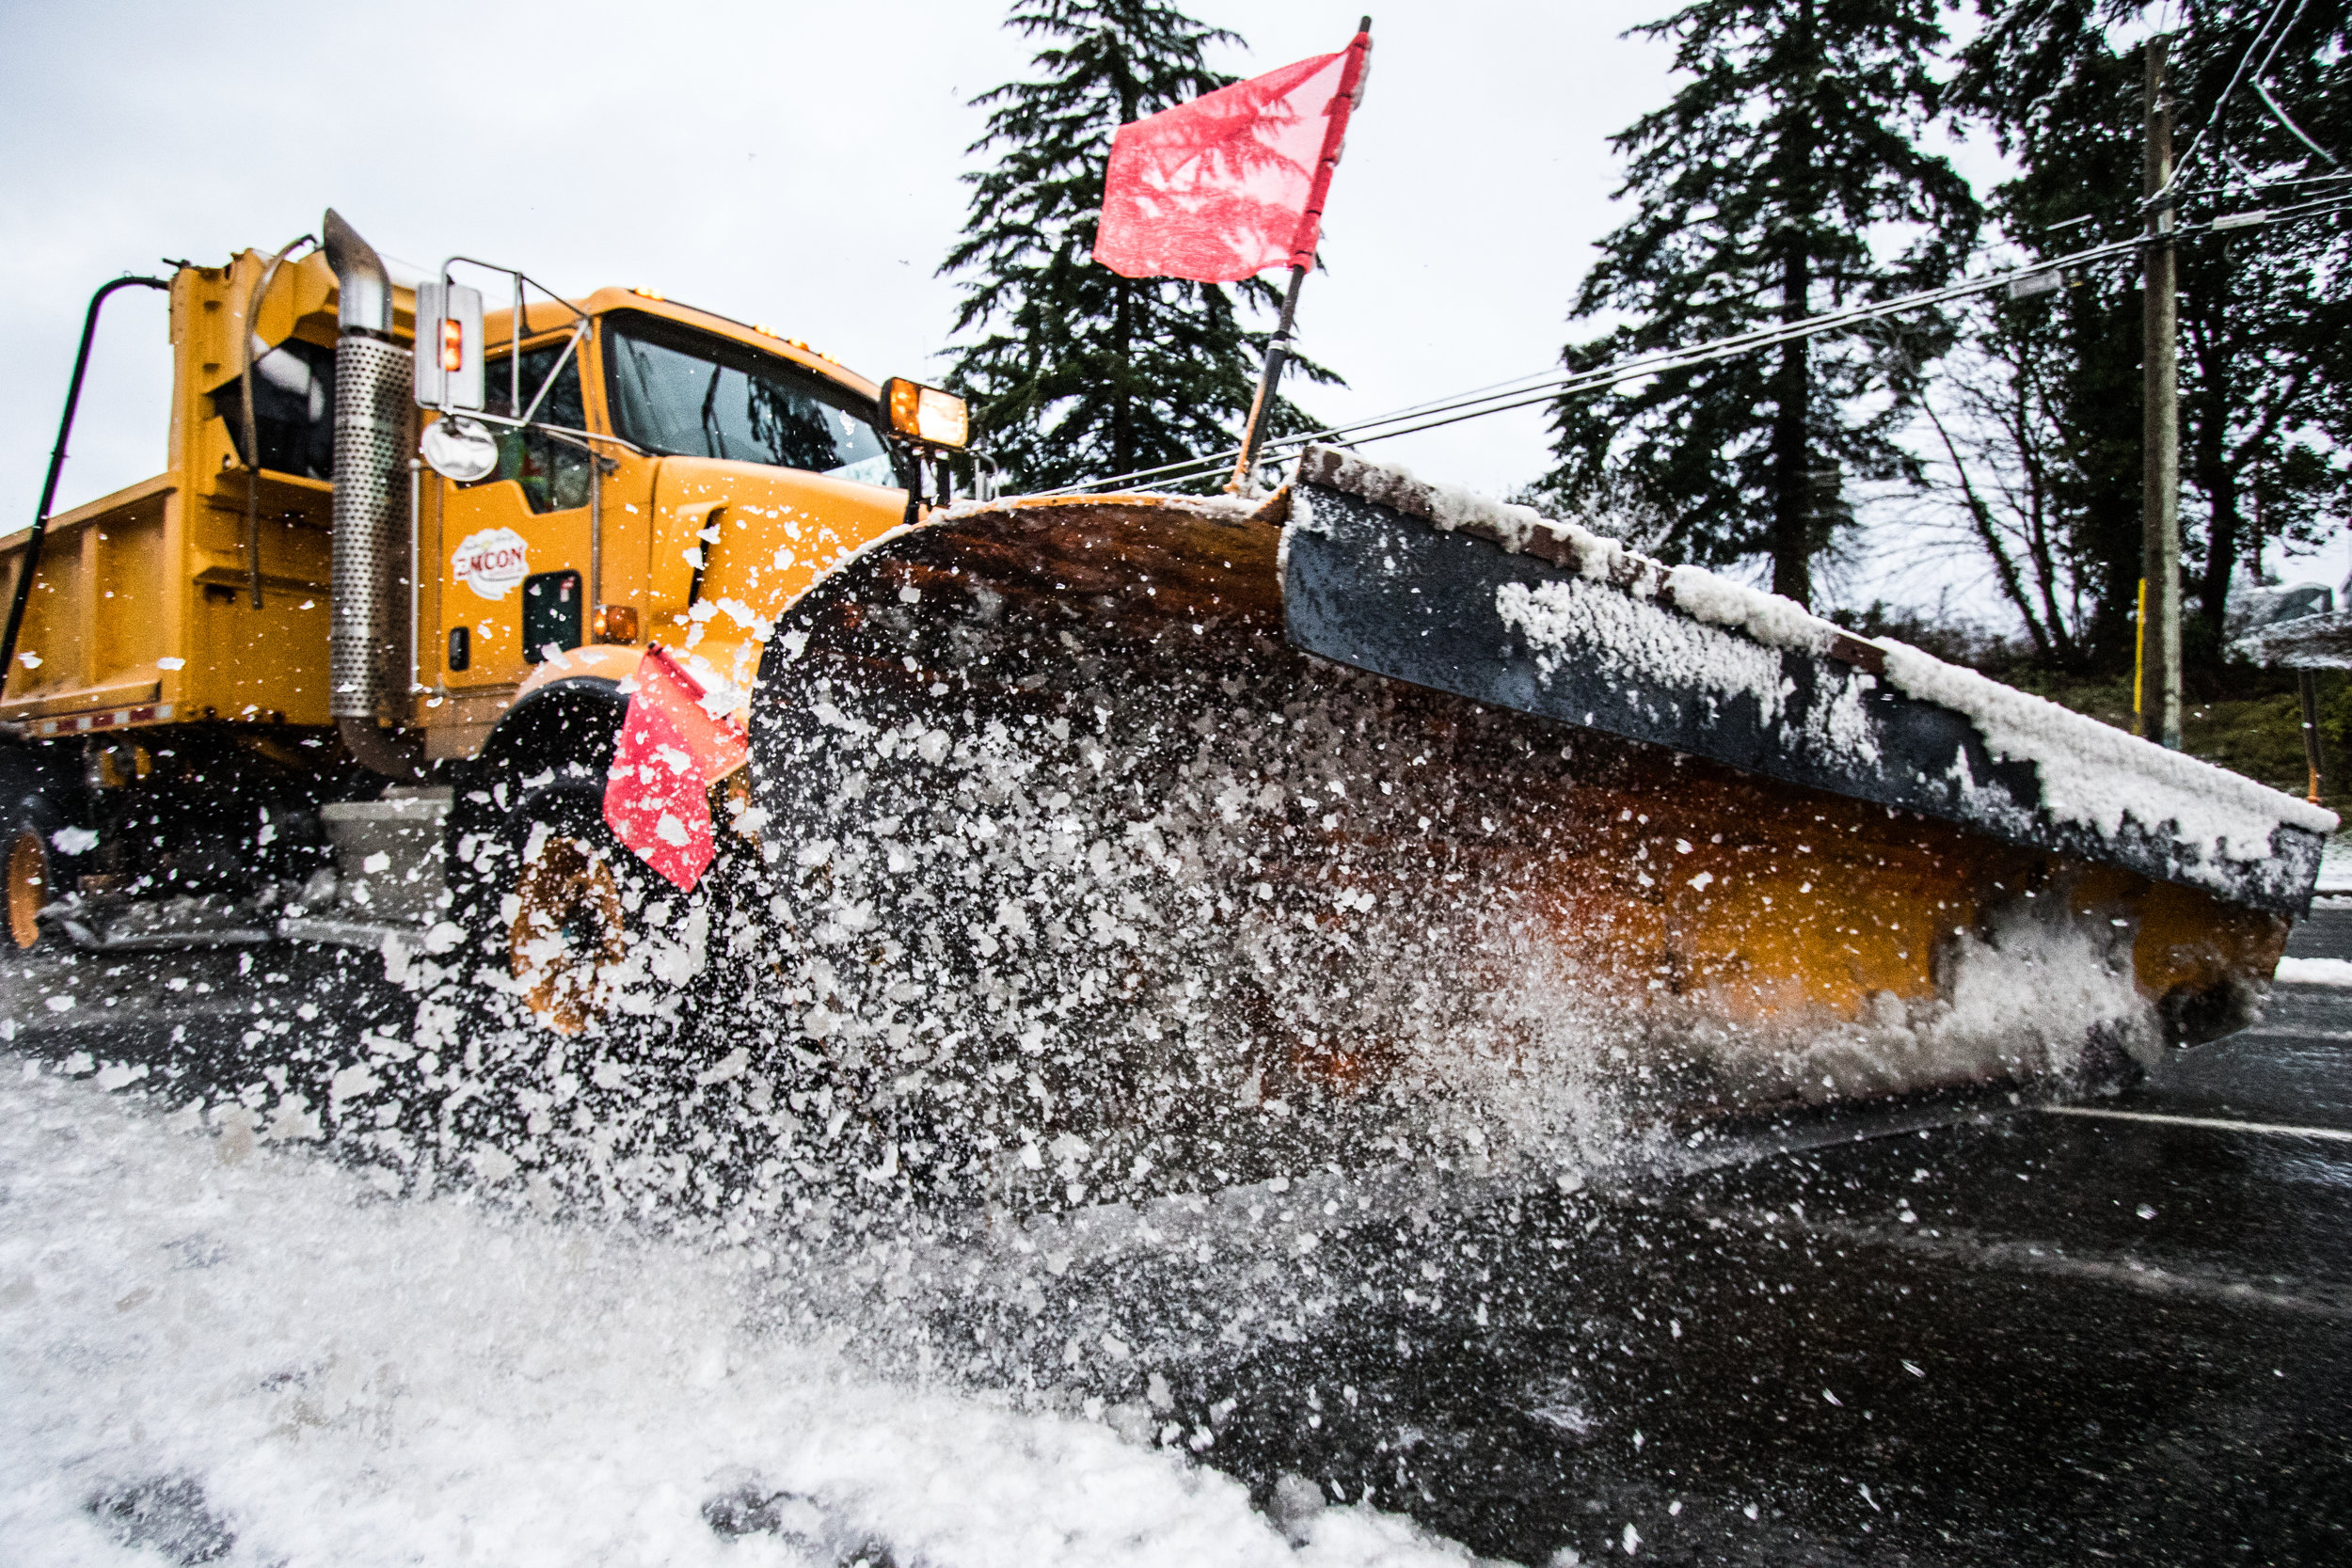 Berg-12-Dec-2016-08-56-11-1X7A9332 Road, Snow, Snowplow, Spray, Winter.jpg